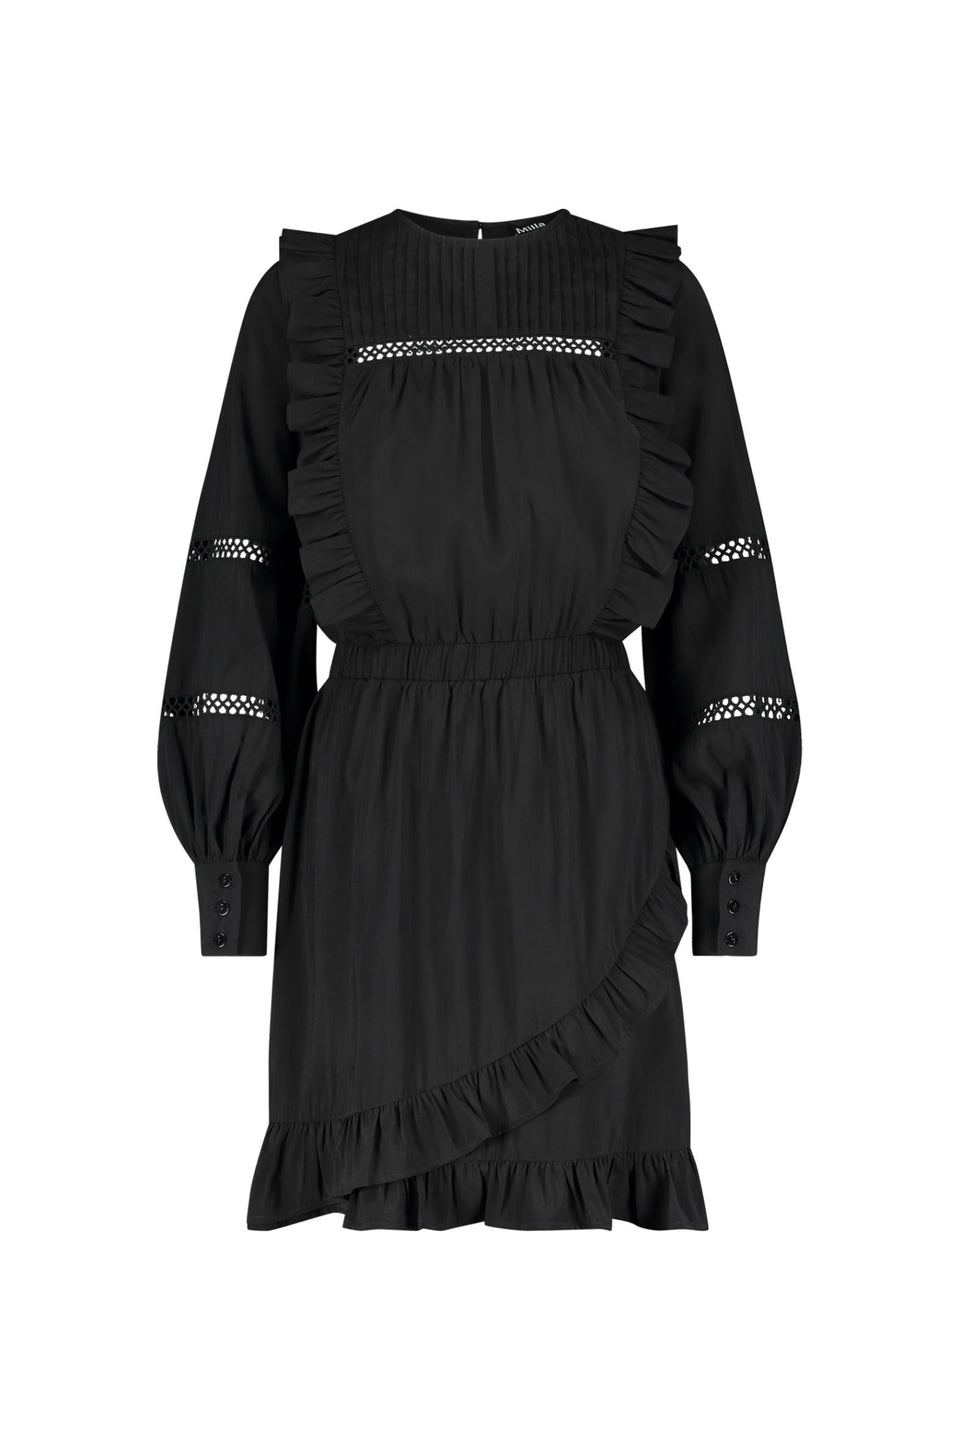 Deloris Dress - Black